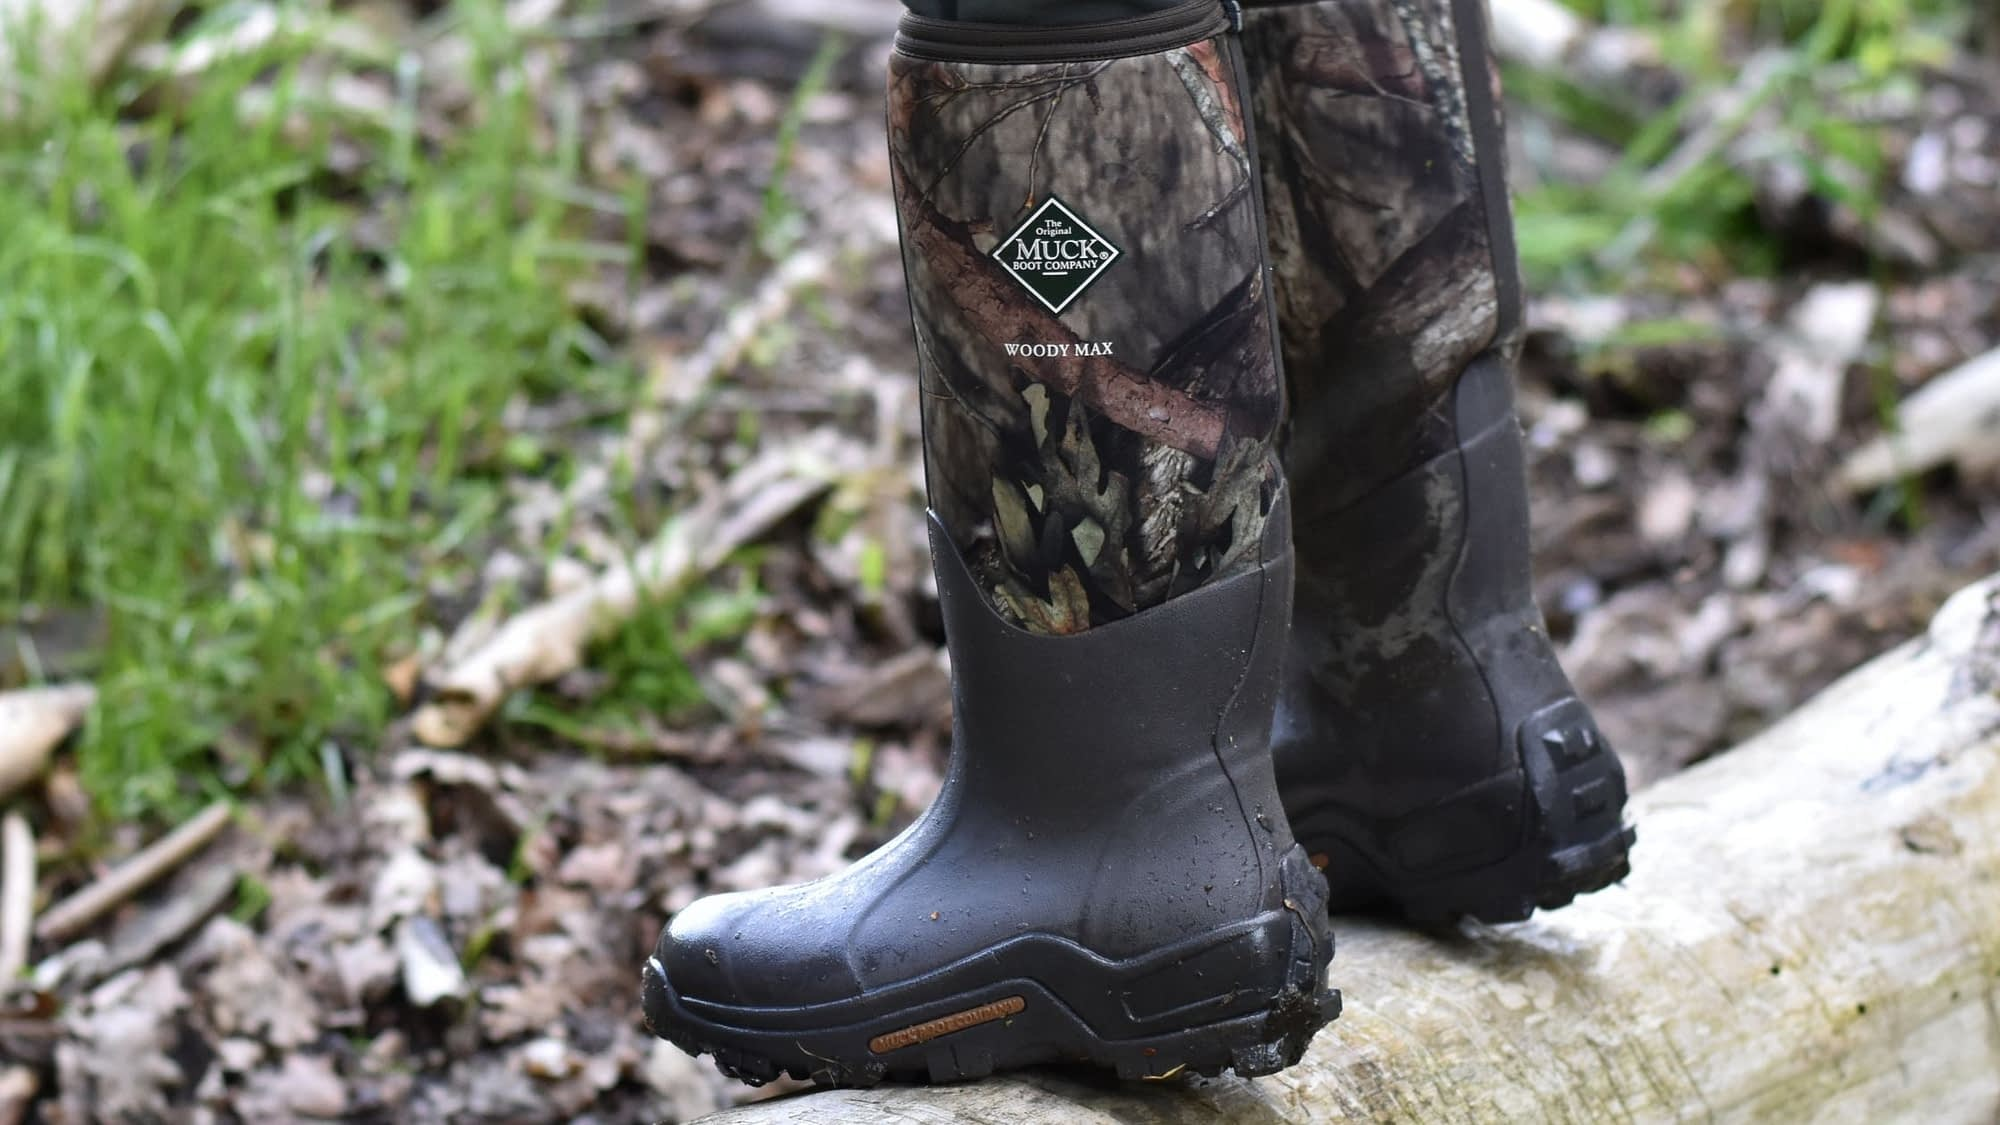 Woody Max Muck Boots Review